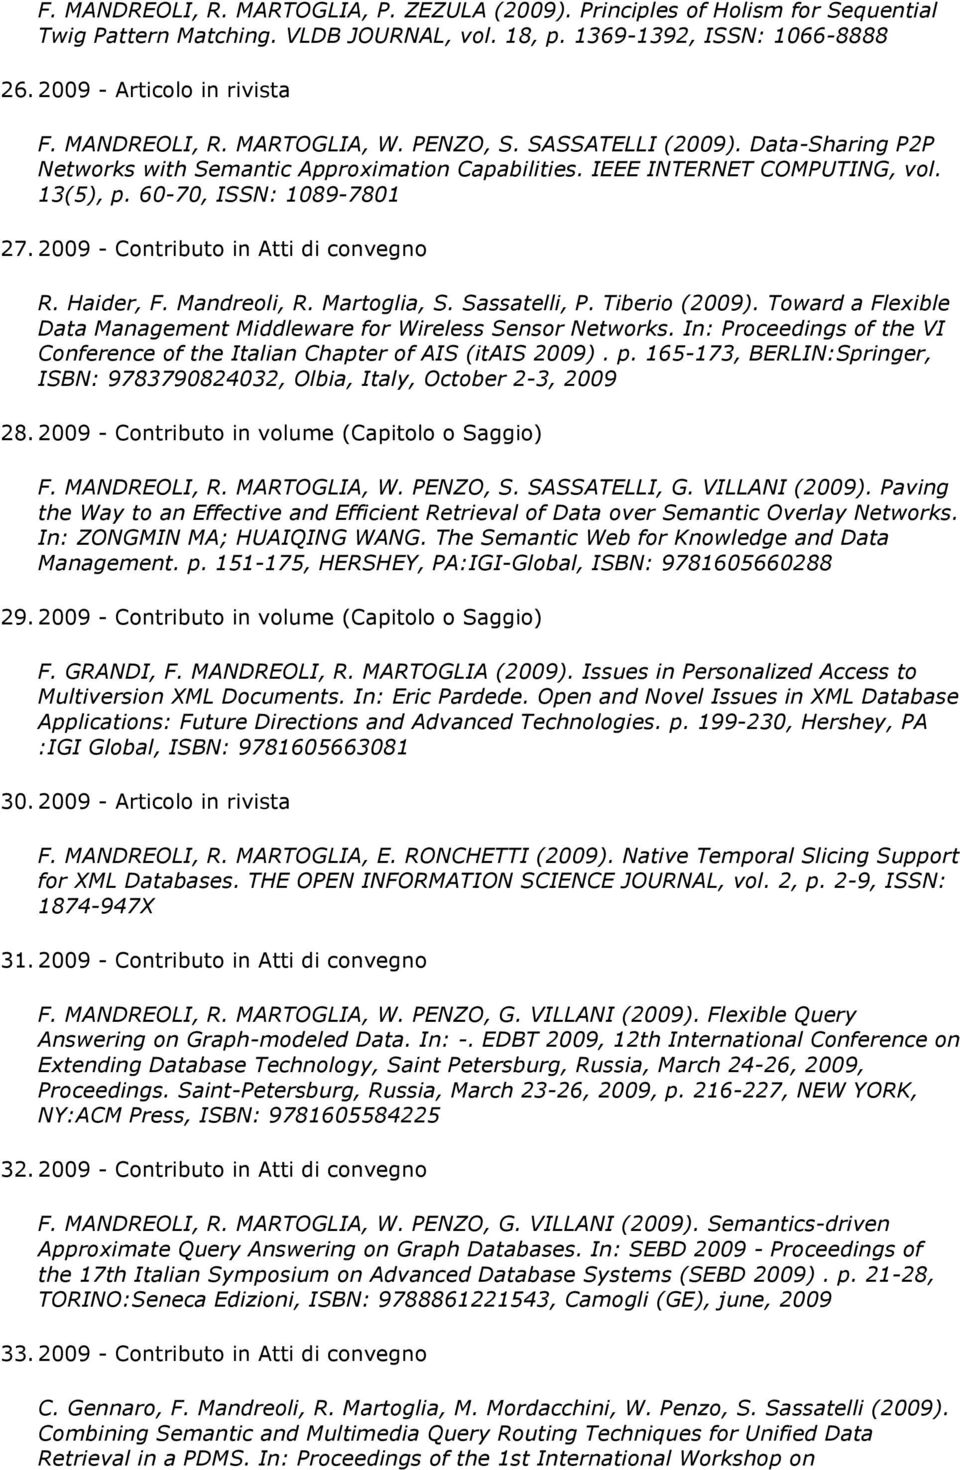 2009 - Contributo in Atti di convegno R. Haider, F. Mandreoli, R. Martoglia, S. Sassatelli, P. Tiberio (2009). Toward a Flexible Data Management Middleware for Wireless Sensor Networks.